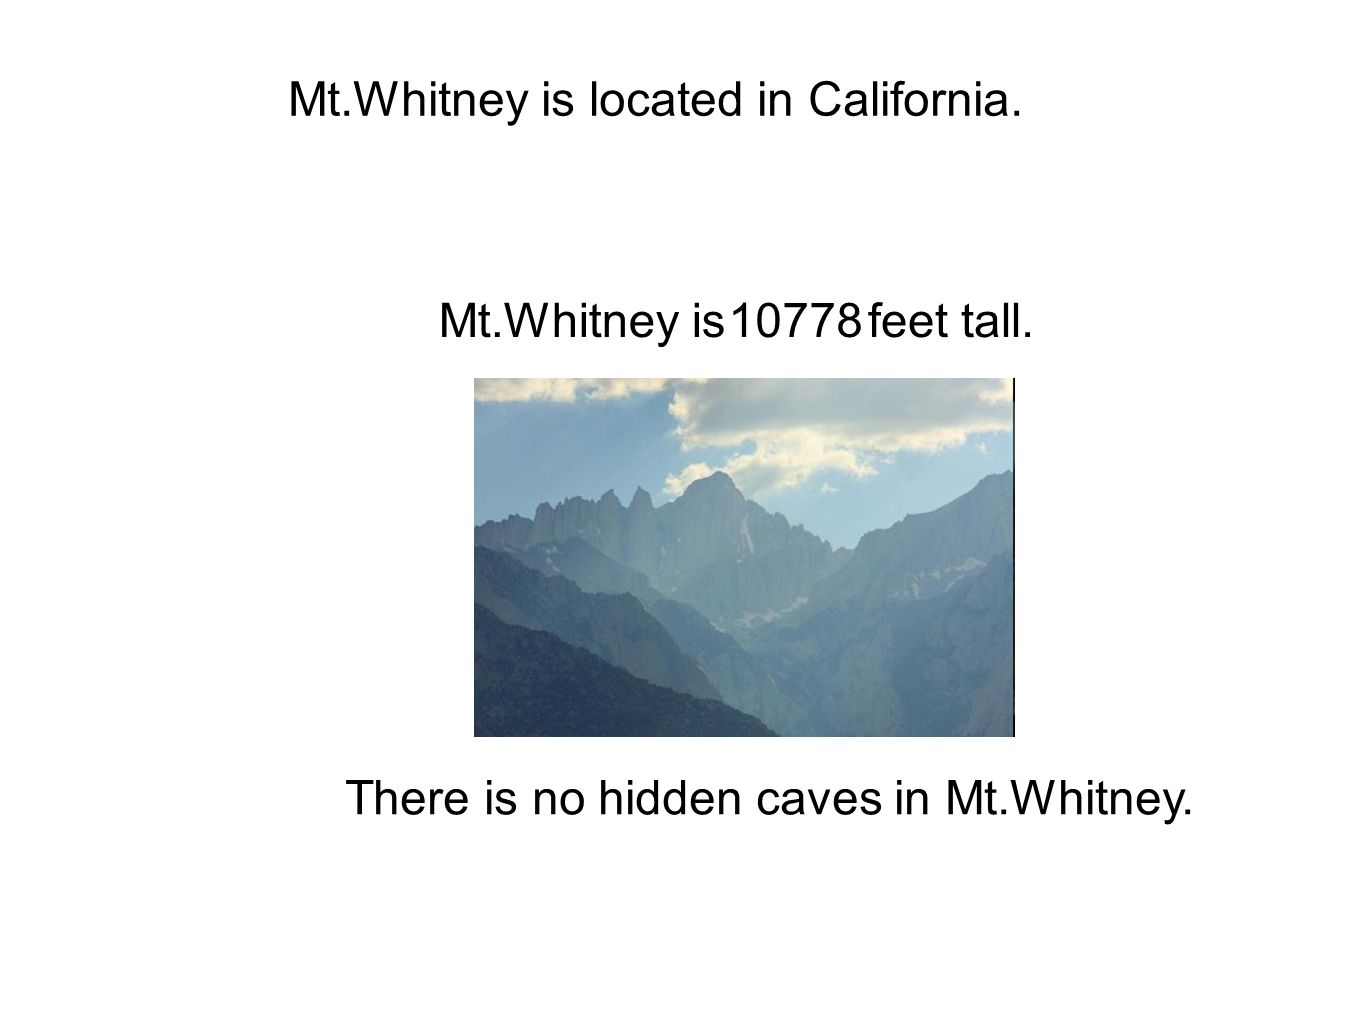 Mt.Whitney is located in California. 10778Mt.Whitney isfeet tall.